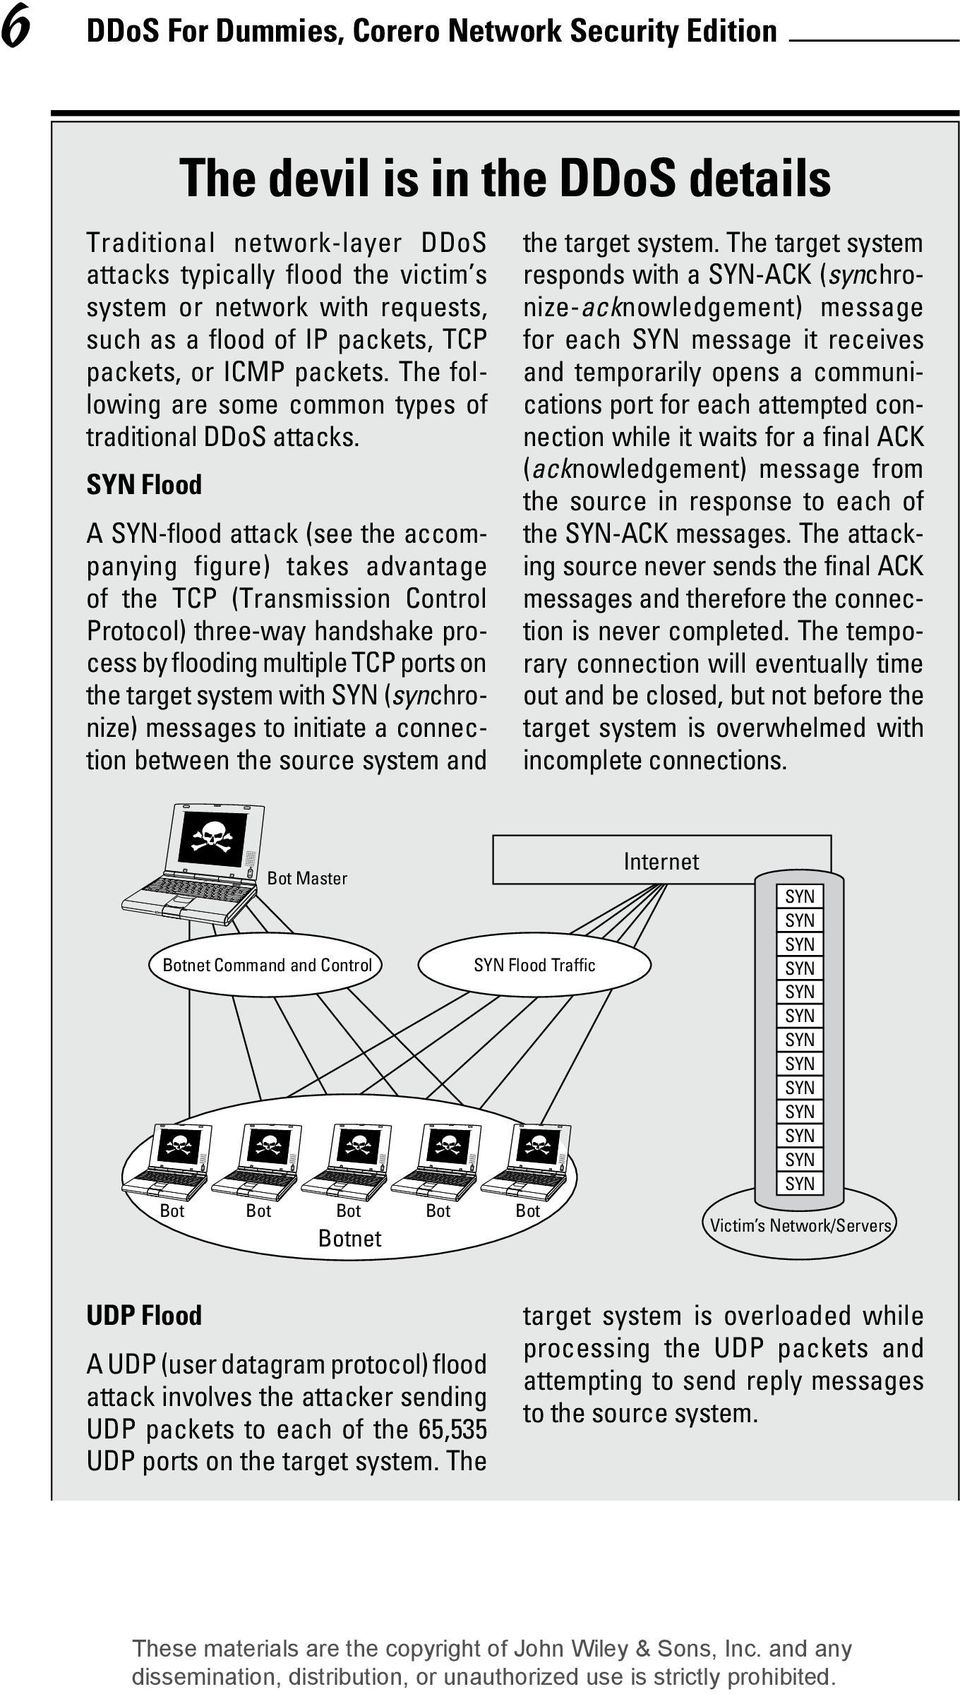 SYN Flood A SYN-flood attack (see the accompanying figure) takes advantage of the TCP (Transmission Control Protocol) three-way handshake process by flooding multiple TCP ports on the target system